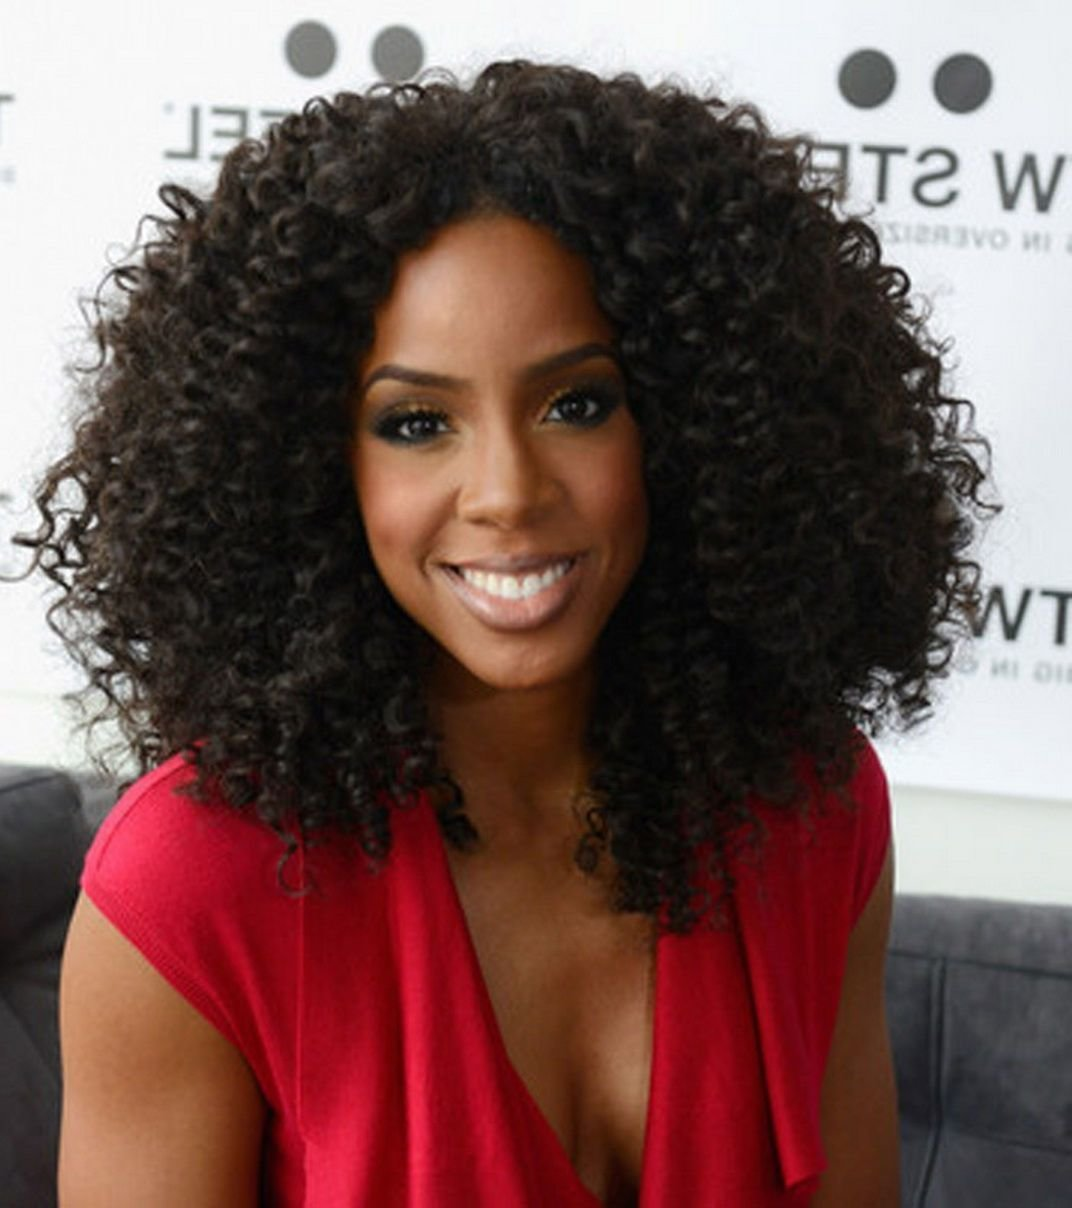 New Latest Black Hairstyles Nice Curly Weave Hairstyles For Black Women Latest Trends Pictures Ideas With Pictures